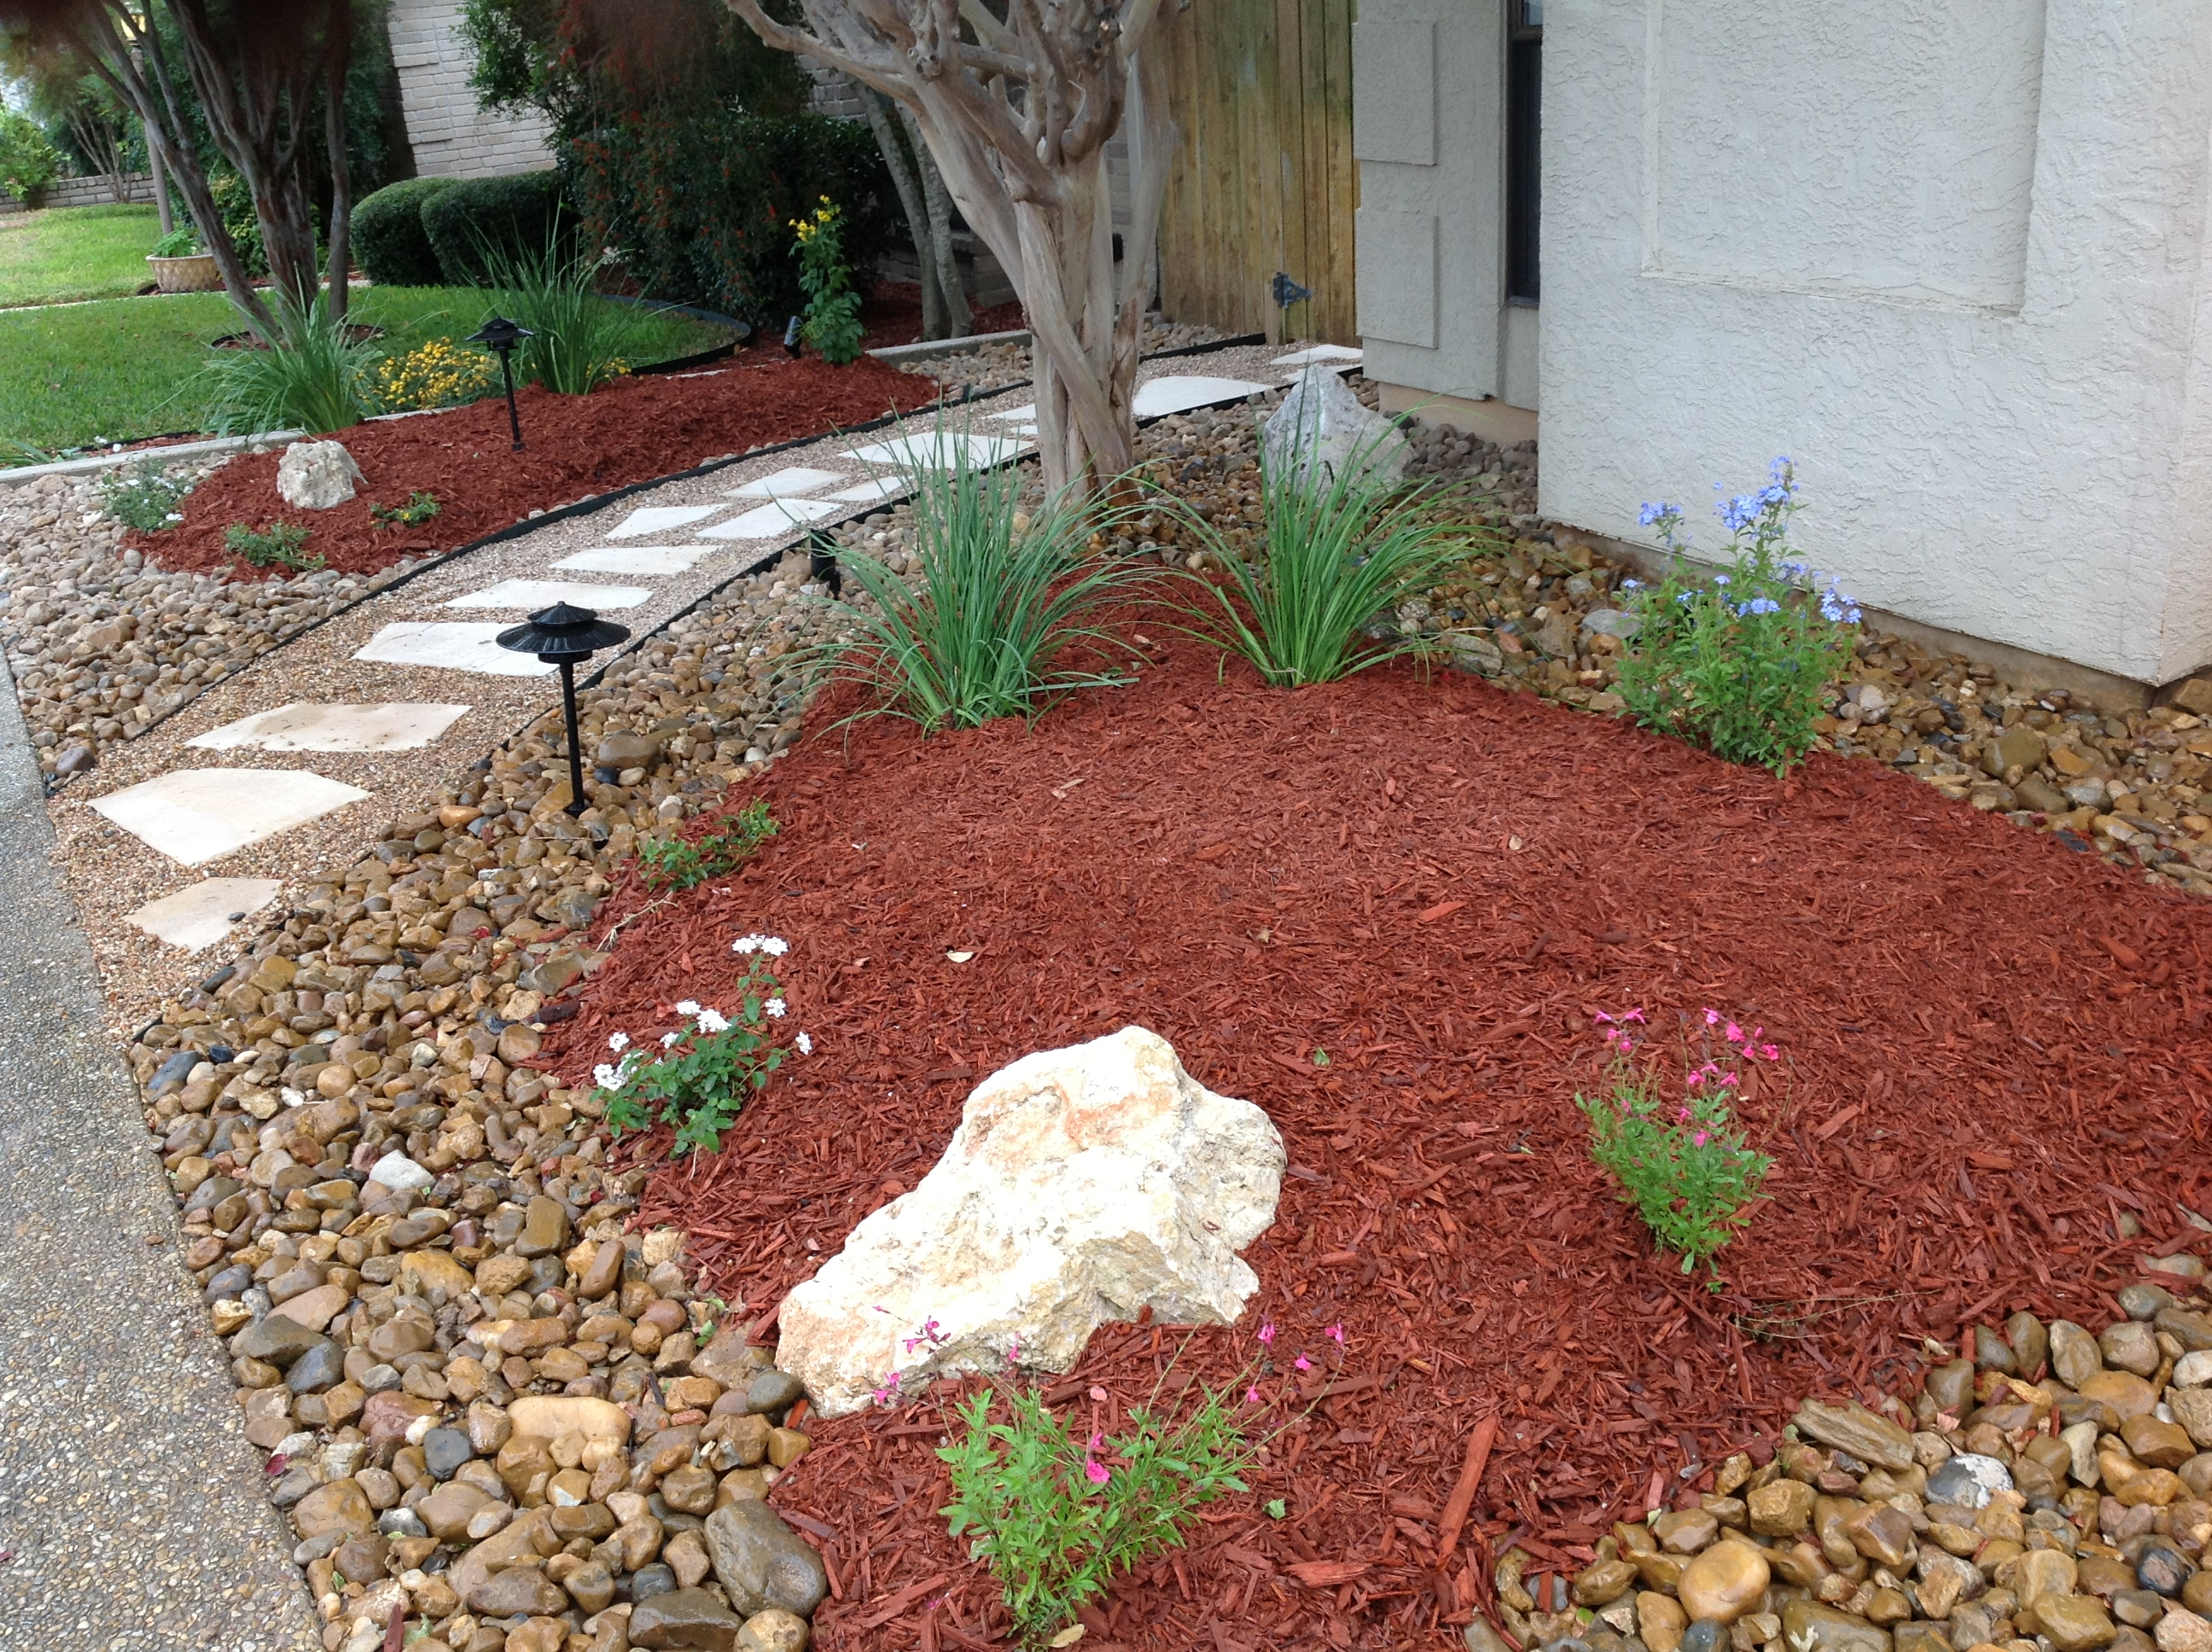 Low maintenance landscaping saves money real property for Best low maintenance landscaping